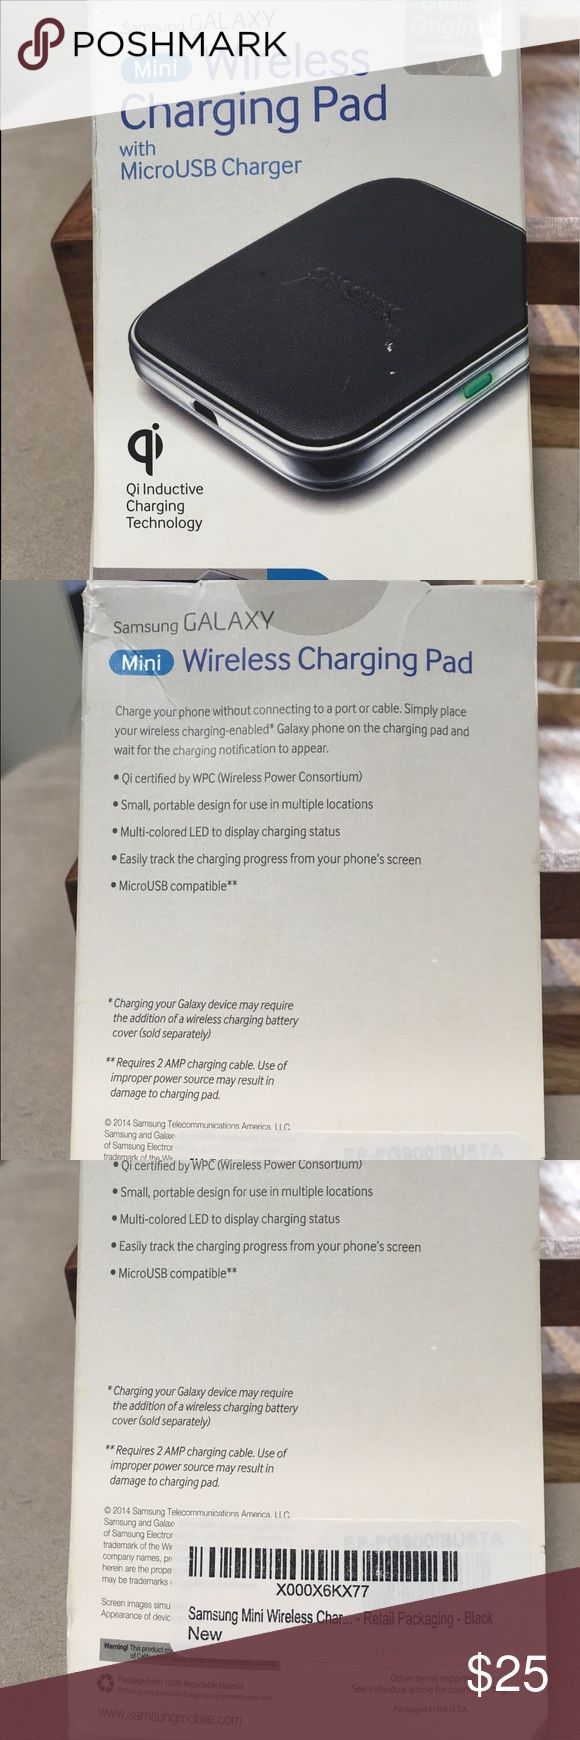 Samsung Galaxy Mini Wireless Charging Pad NWT! Charge your phone without connecting to a port or cable! Just lay it on this wireless charging pad. Great for living rooms or bedrooms where you need a quick charge up. NOTE: the box is open, but the items are all included and never before used. This was a gift and i no longer had a Samsung phone by the time i received it. I've included a picture of the items. Any questions let me know! Samsung Galaxy Accessories Phone Cases